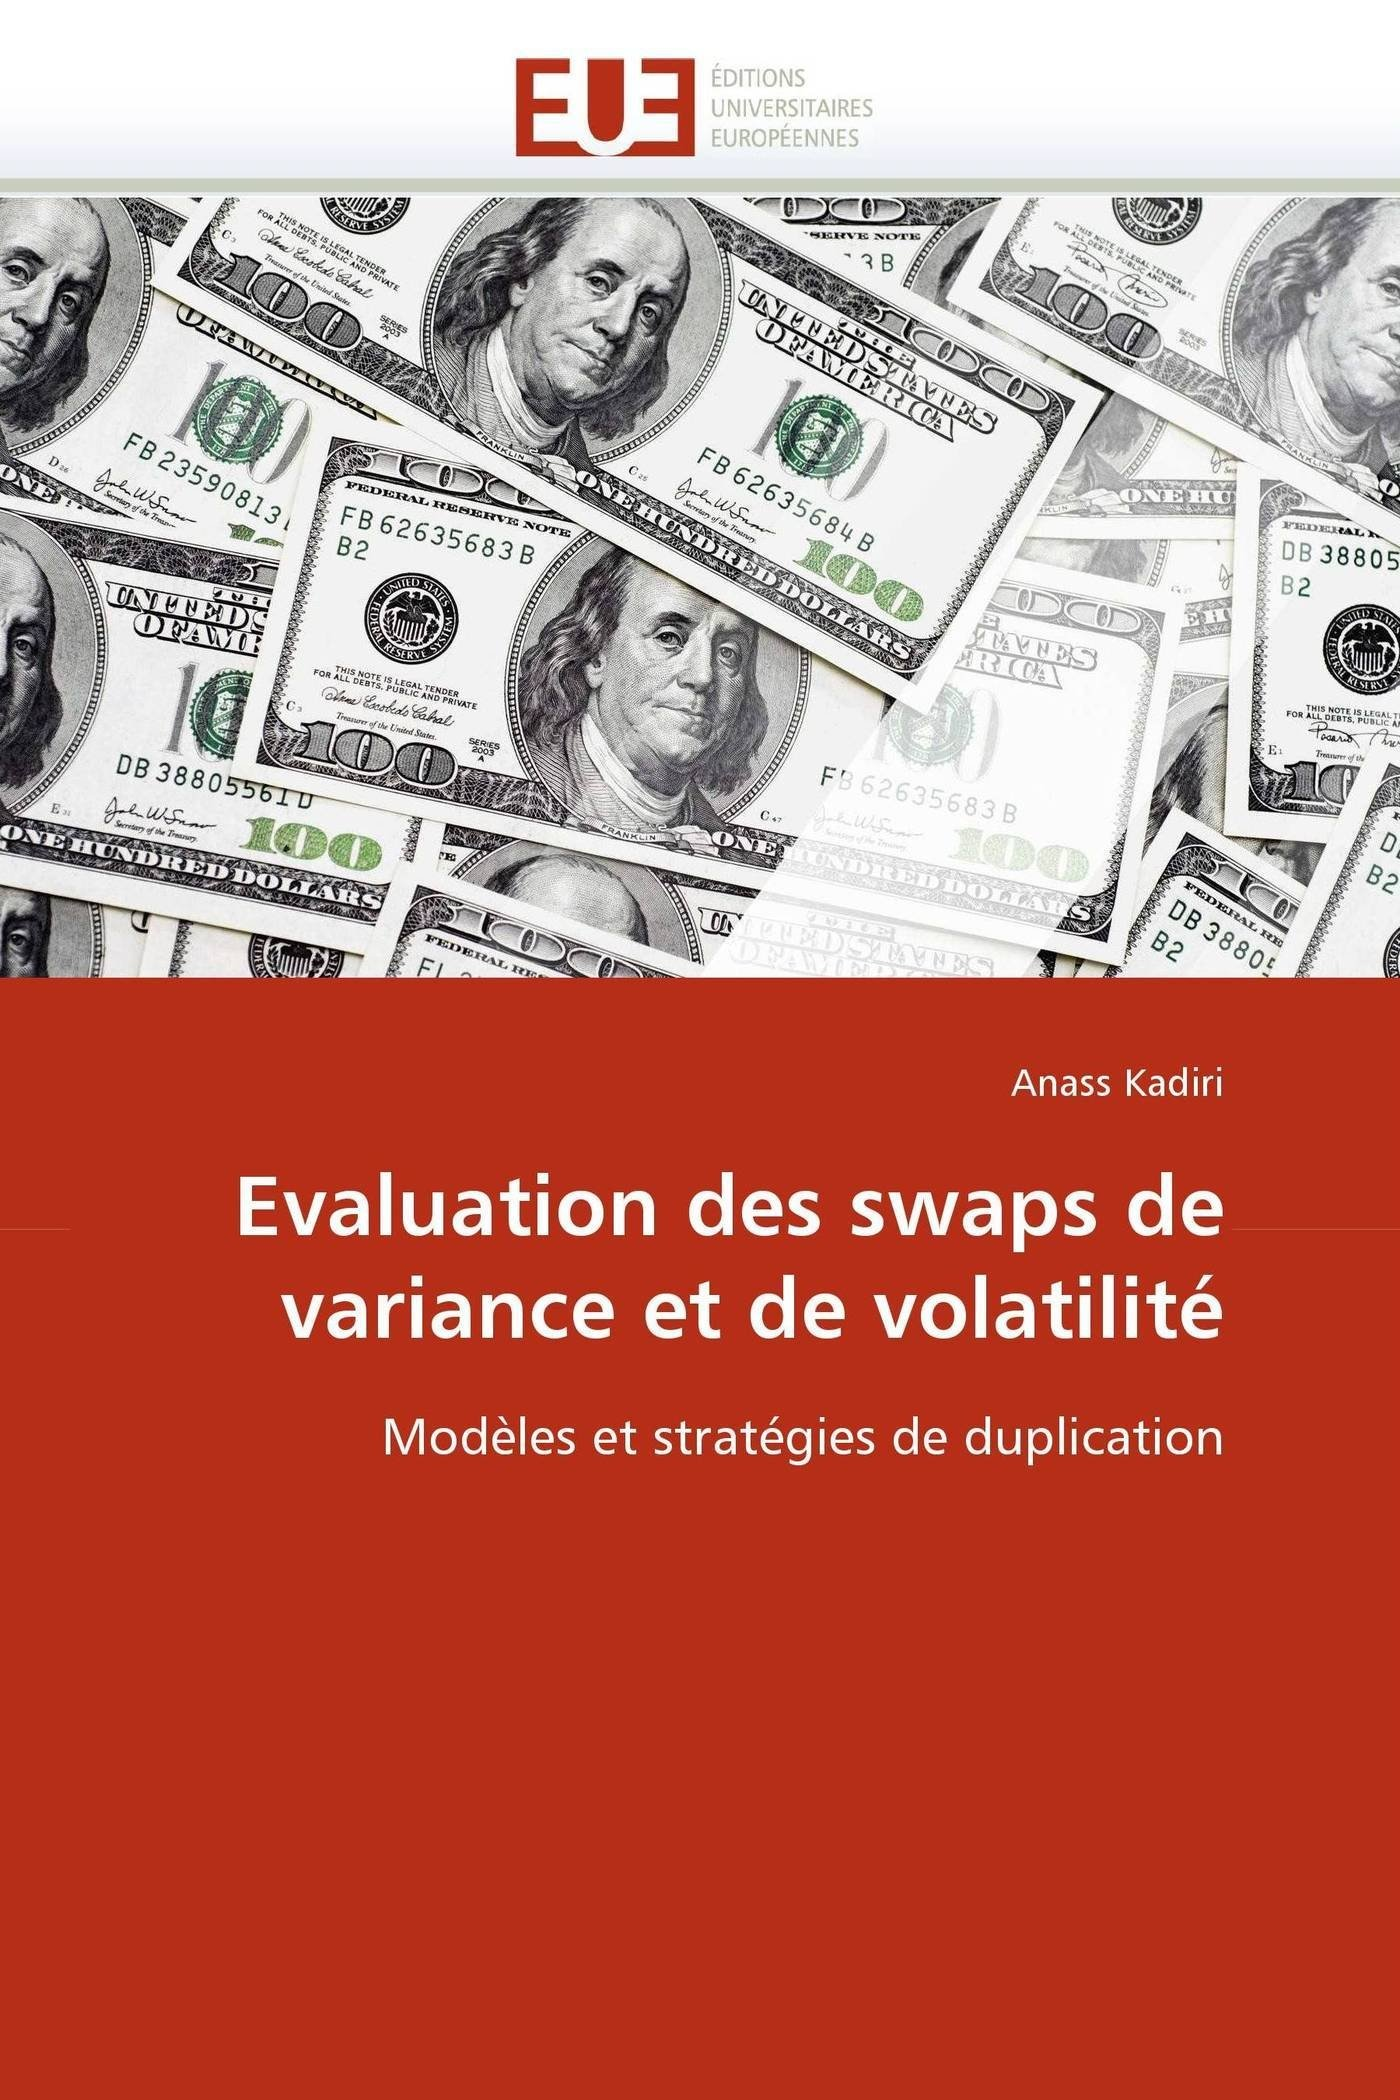 évaluation des sites de trading